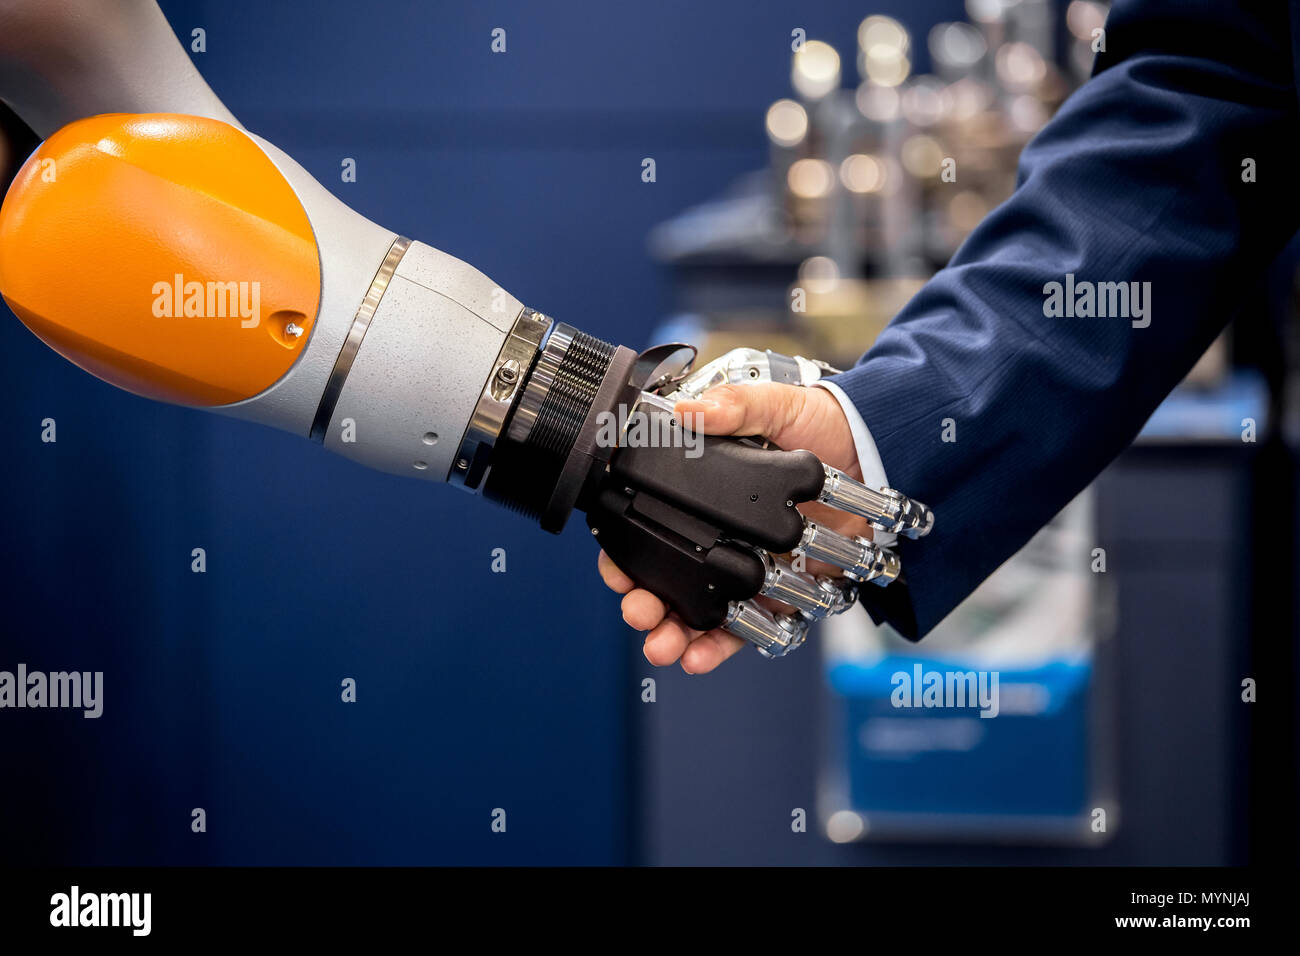 Robot hand shaking Stock Photo: 189174794 - Alamy